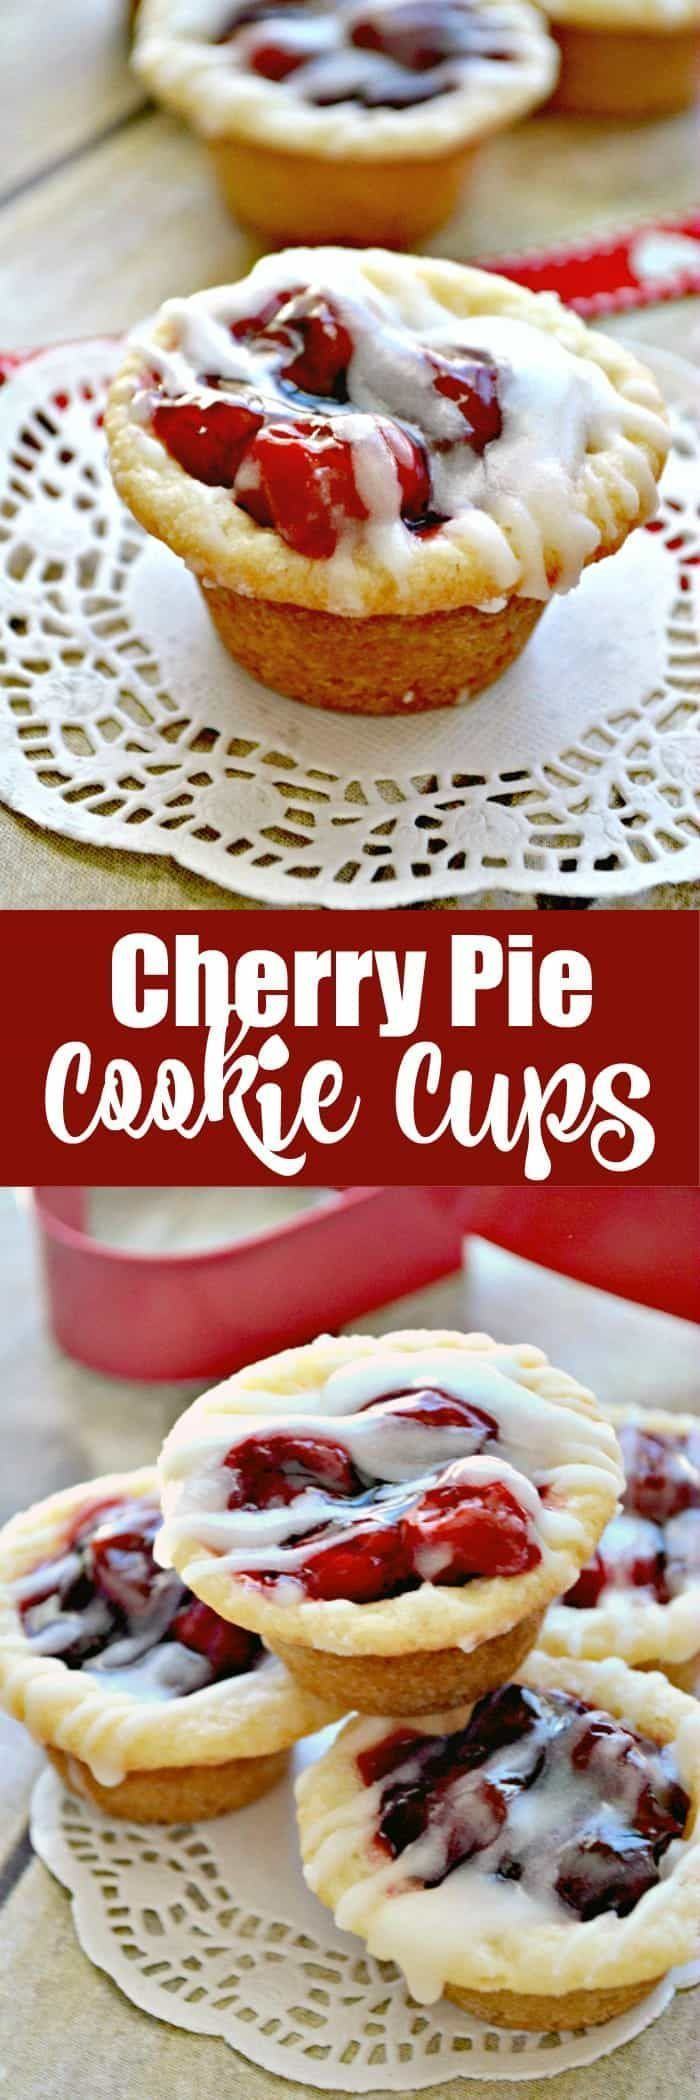 Cherry Pie Cookie Cups - Dessert Recipes for Kids